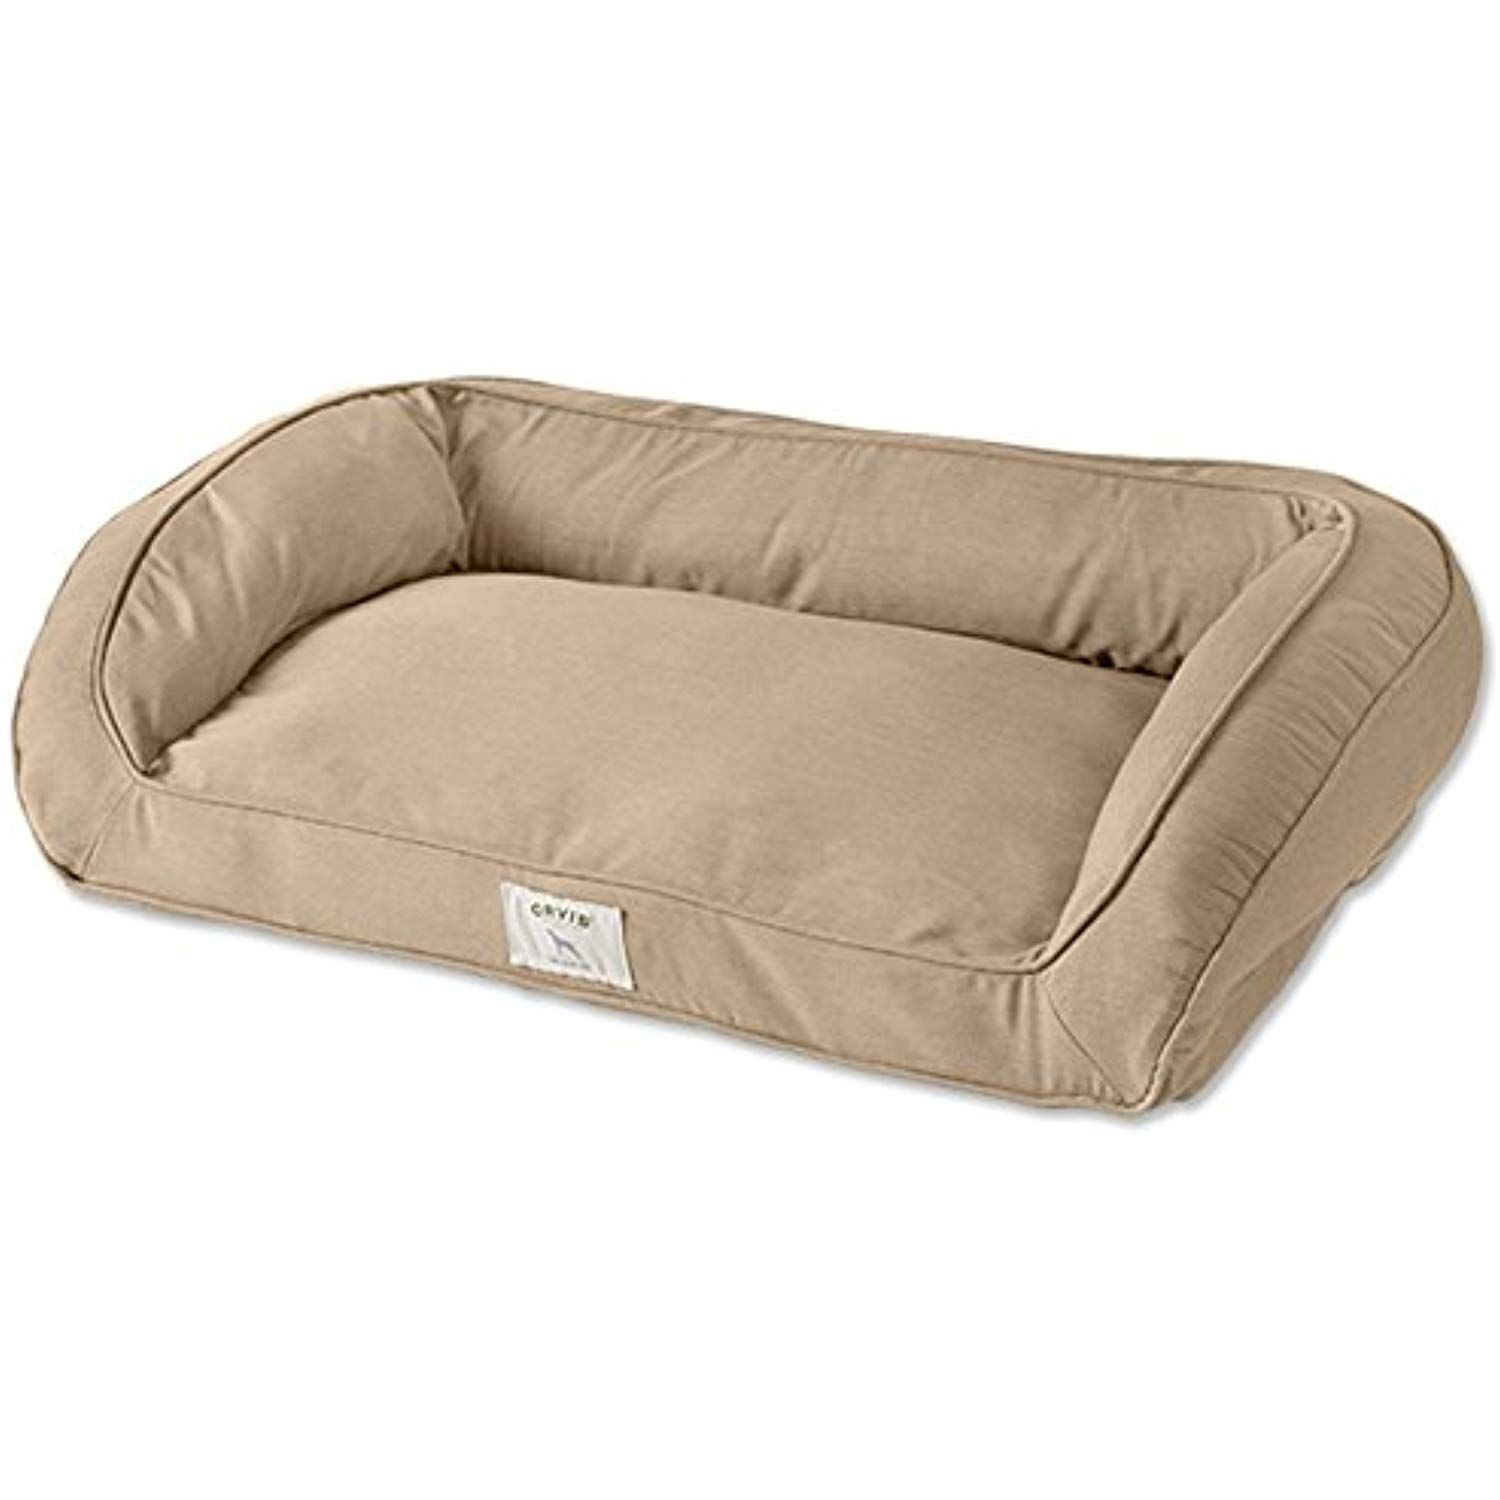 Sunbrella Orvis Indoor Outdoor Comfortfill Bolster Dog Bed Only Large Dogs 60 90 Lbs Beige Click On The Image For Additional Details Dogbeds